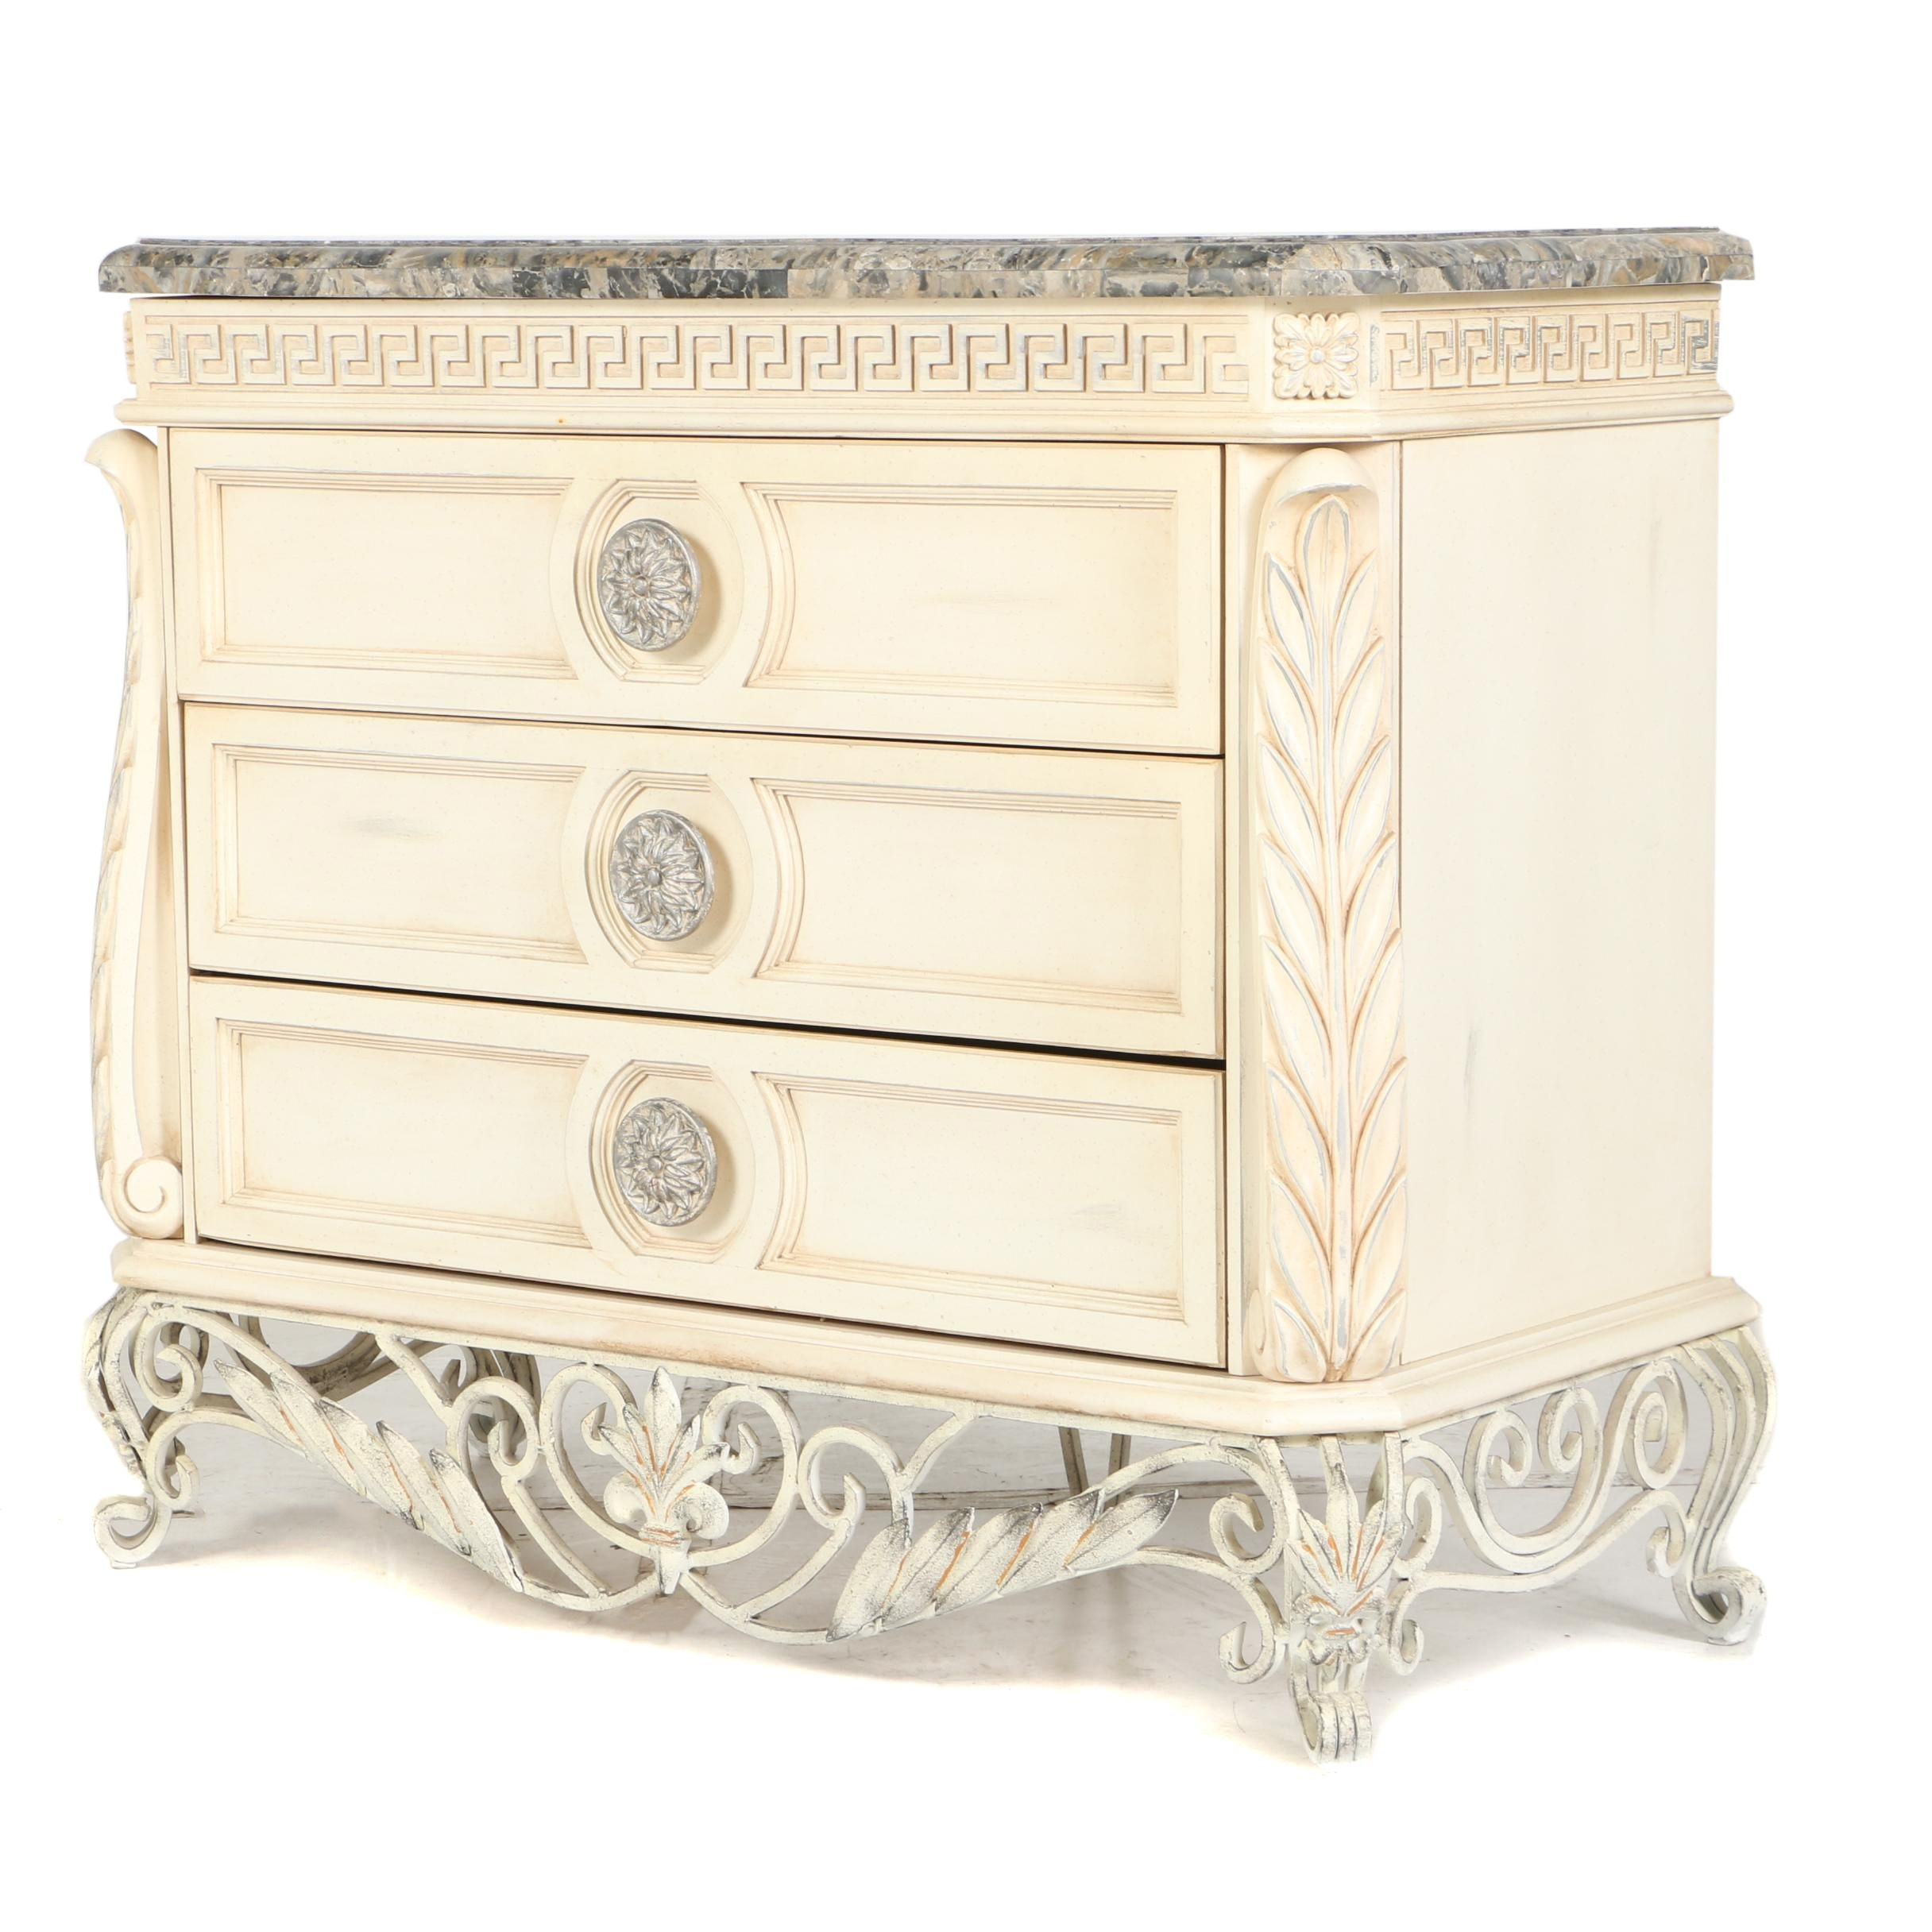 Contemporary Cream-Painted and Laminated-Marble Chest of Drawers by Pulaski